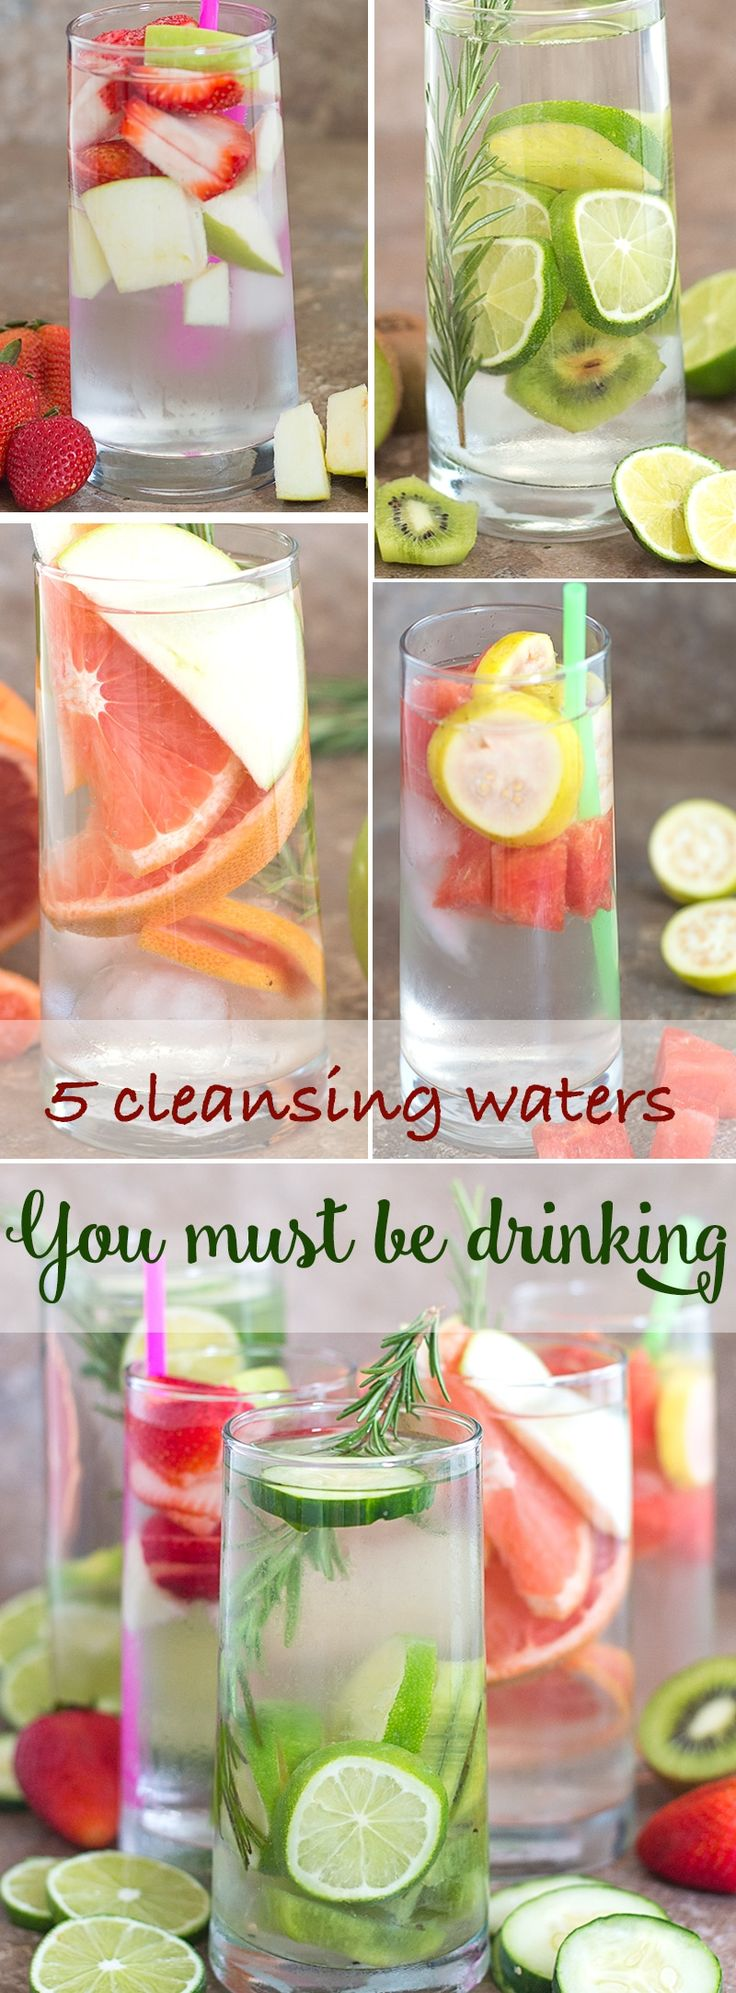 5 delicious summer cleansing waters that you should be drinking everyday to stay hydrated